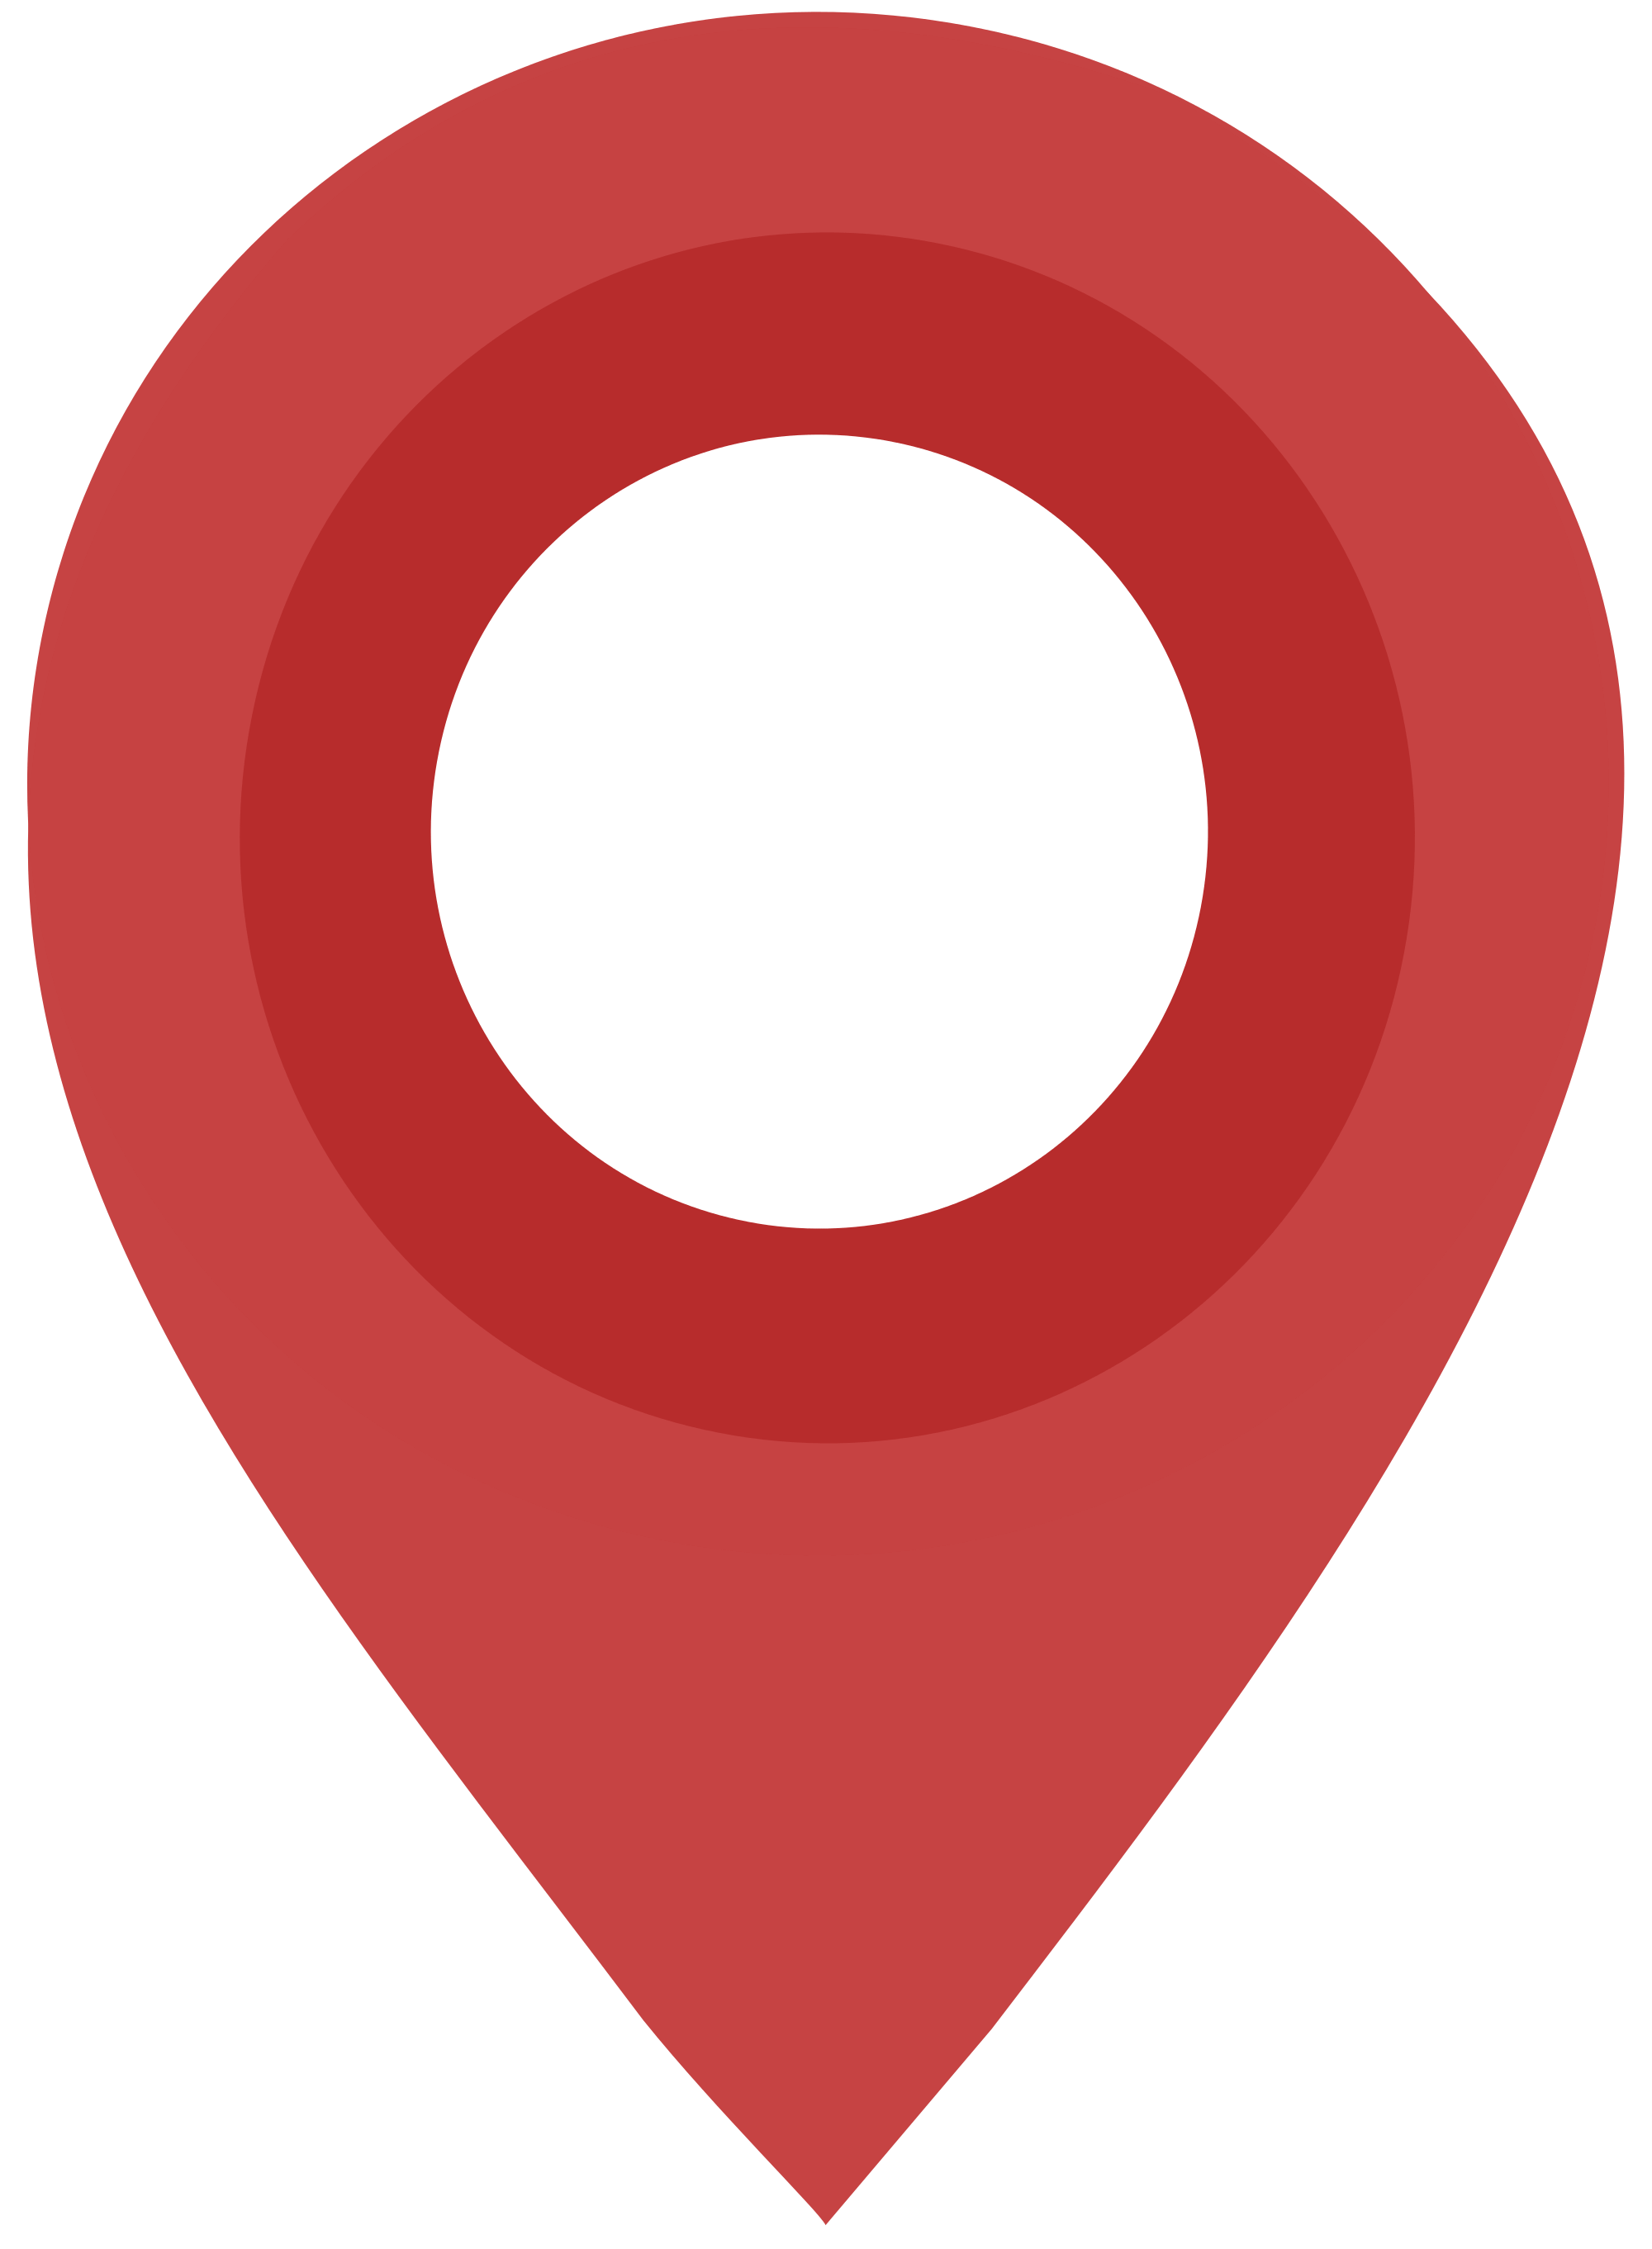 Red location pin png. Pins transparent images stickpng